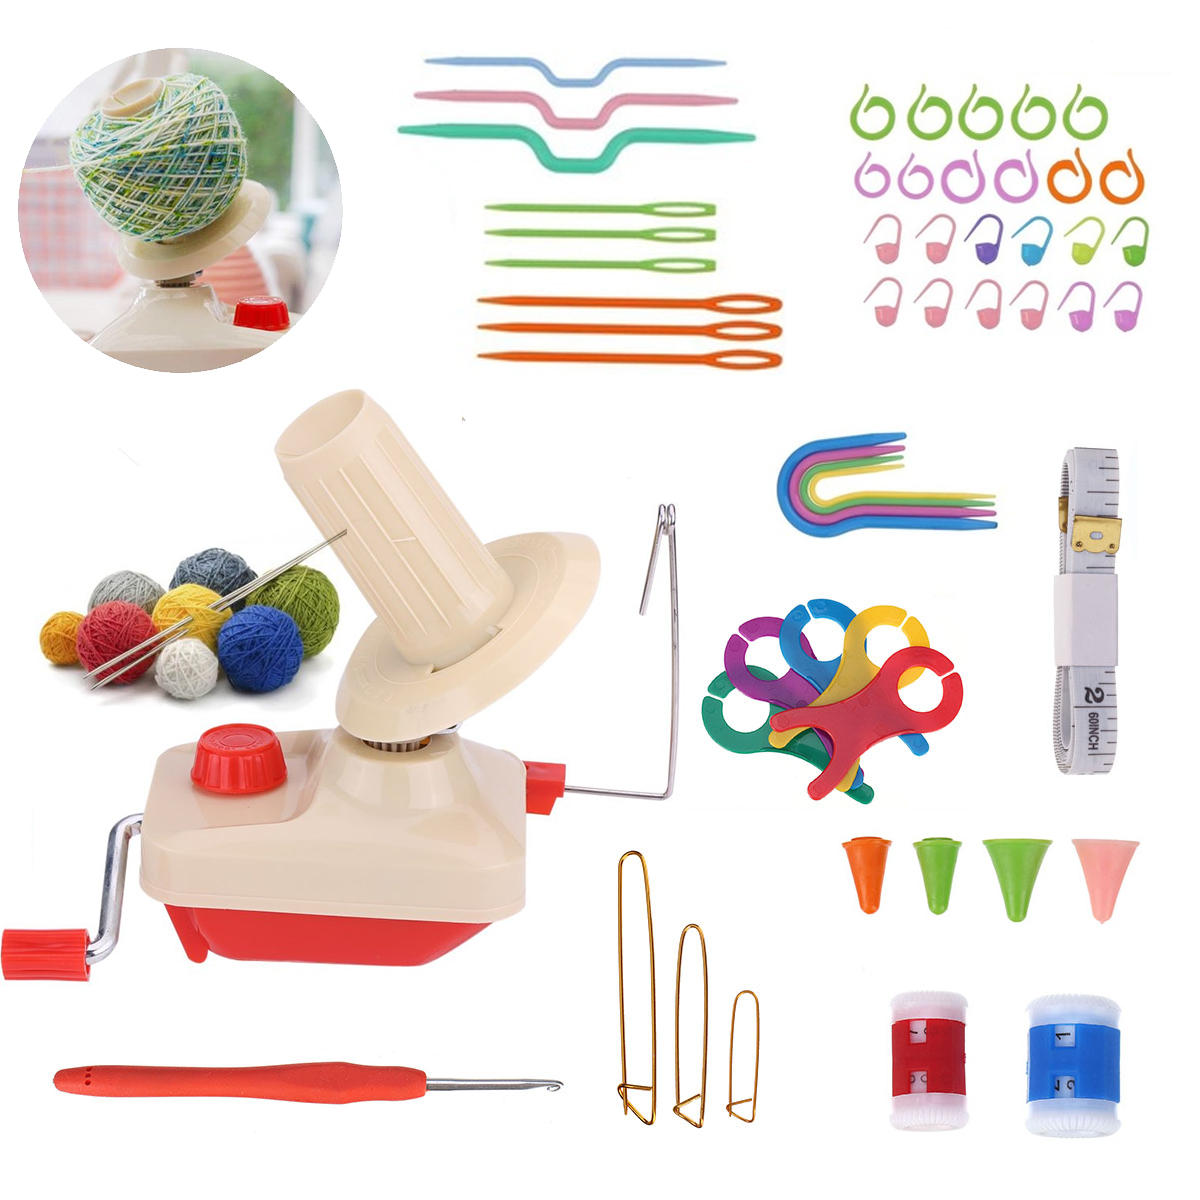 Winding String Machine Ruler Crochet Needle Wool Bobbin Buckle Counting Ring DIY Knitting Tools Kit